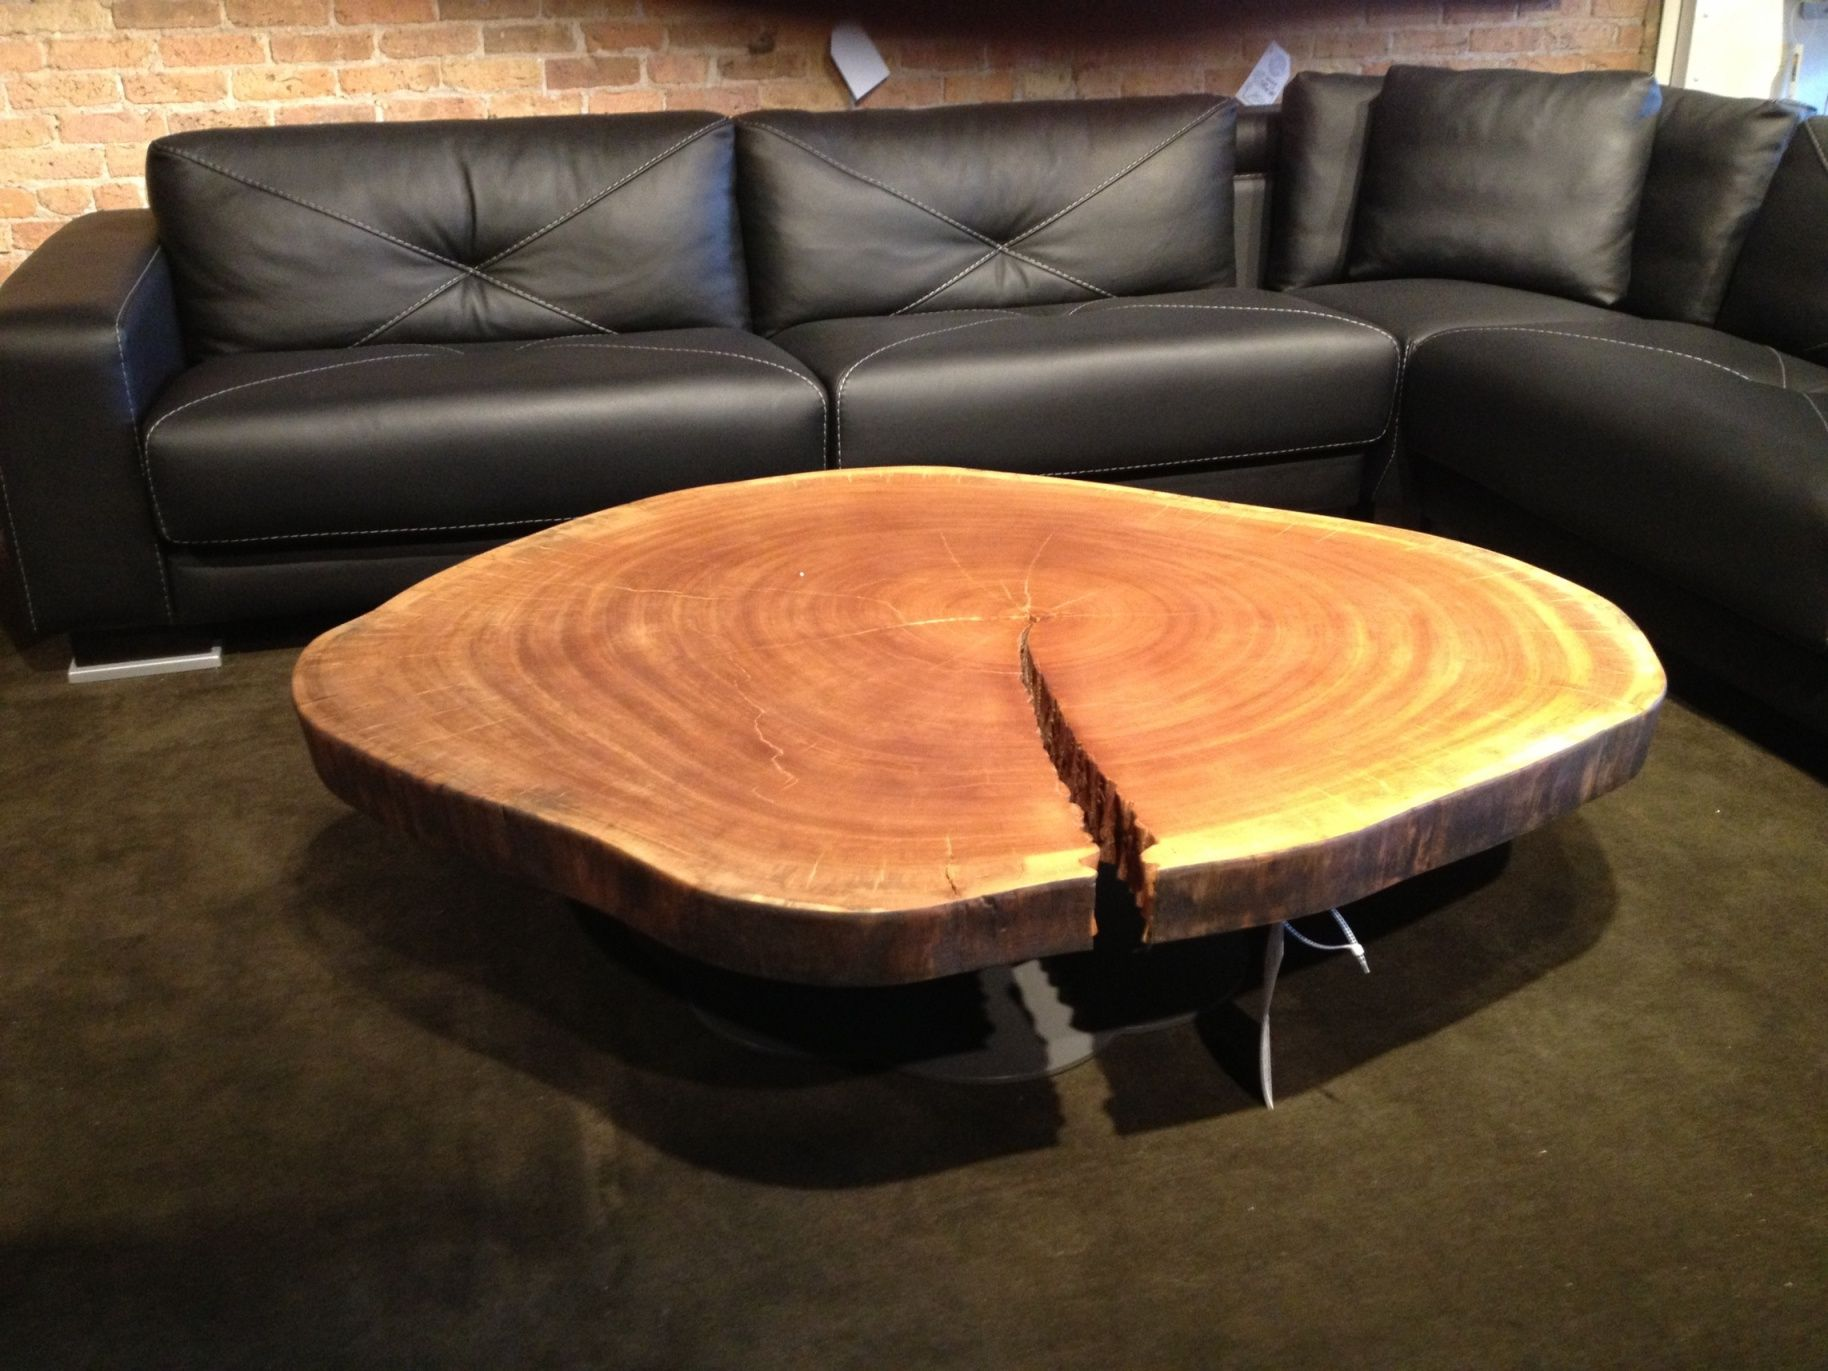 Furniture Tree Branch Coffee Table Black Sofas And Tree Coffee Table Ideas  Log Coffee Table. Furniture Tree Branch Coffee Table Black Sofas And Tree Coffee